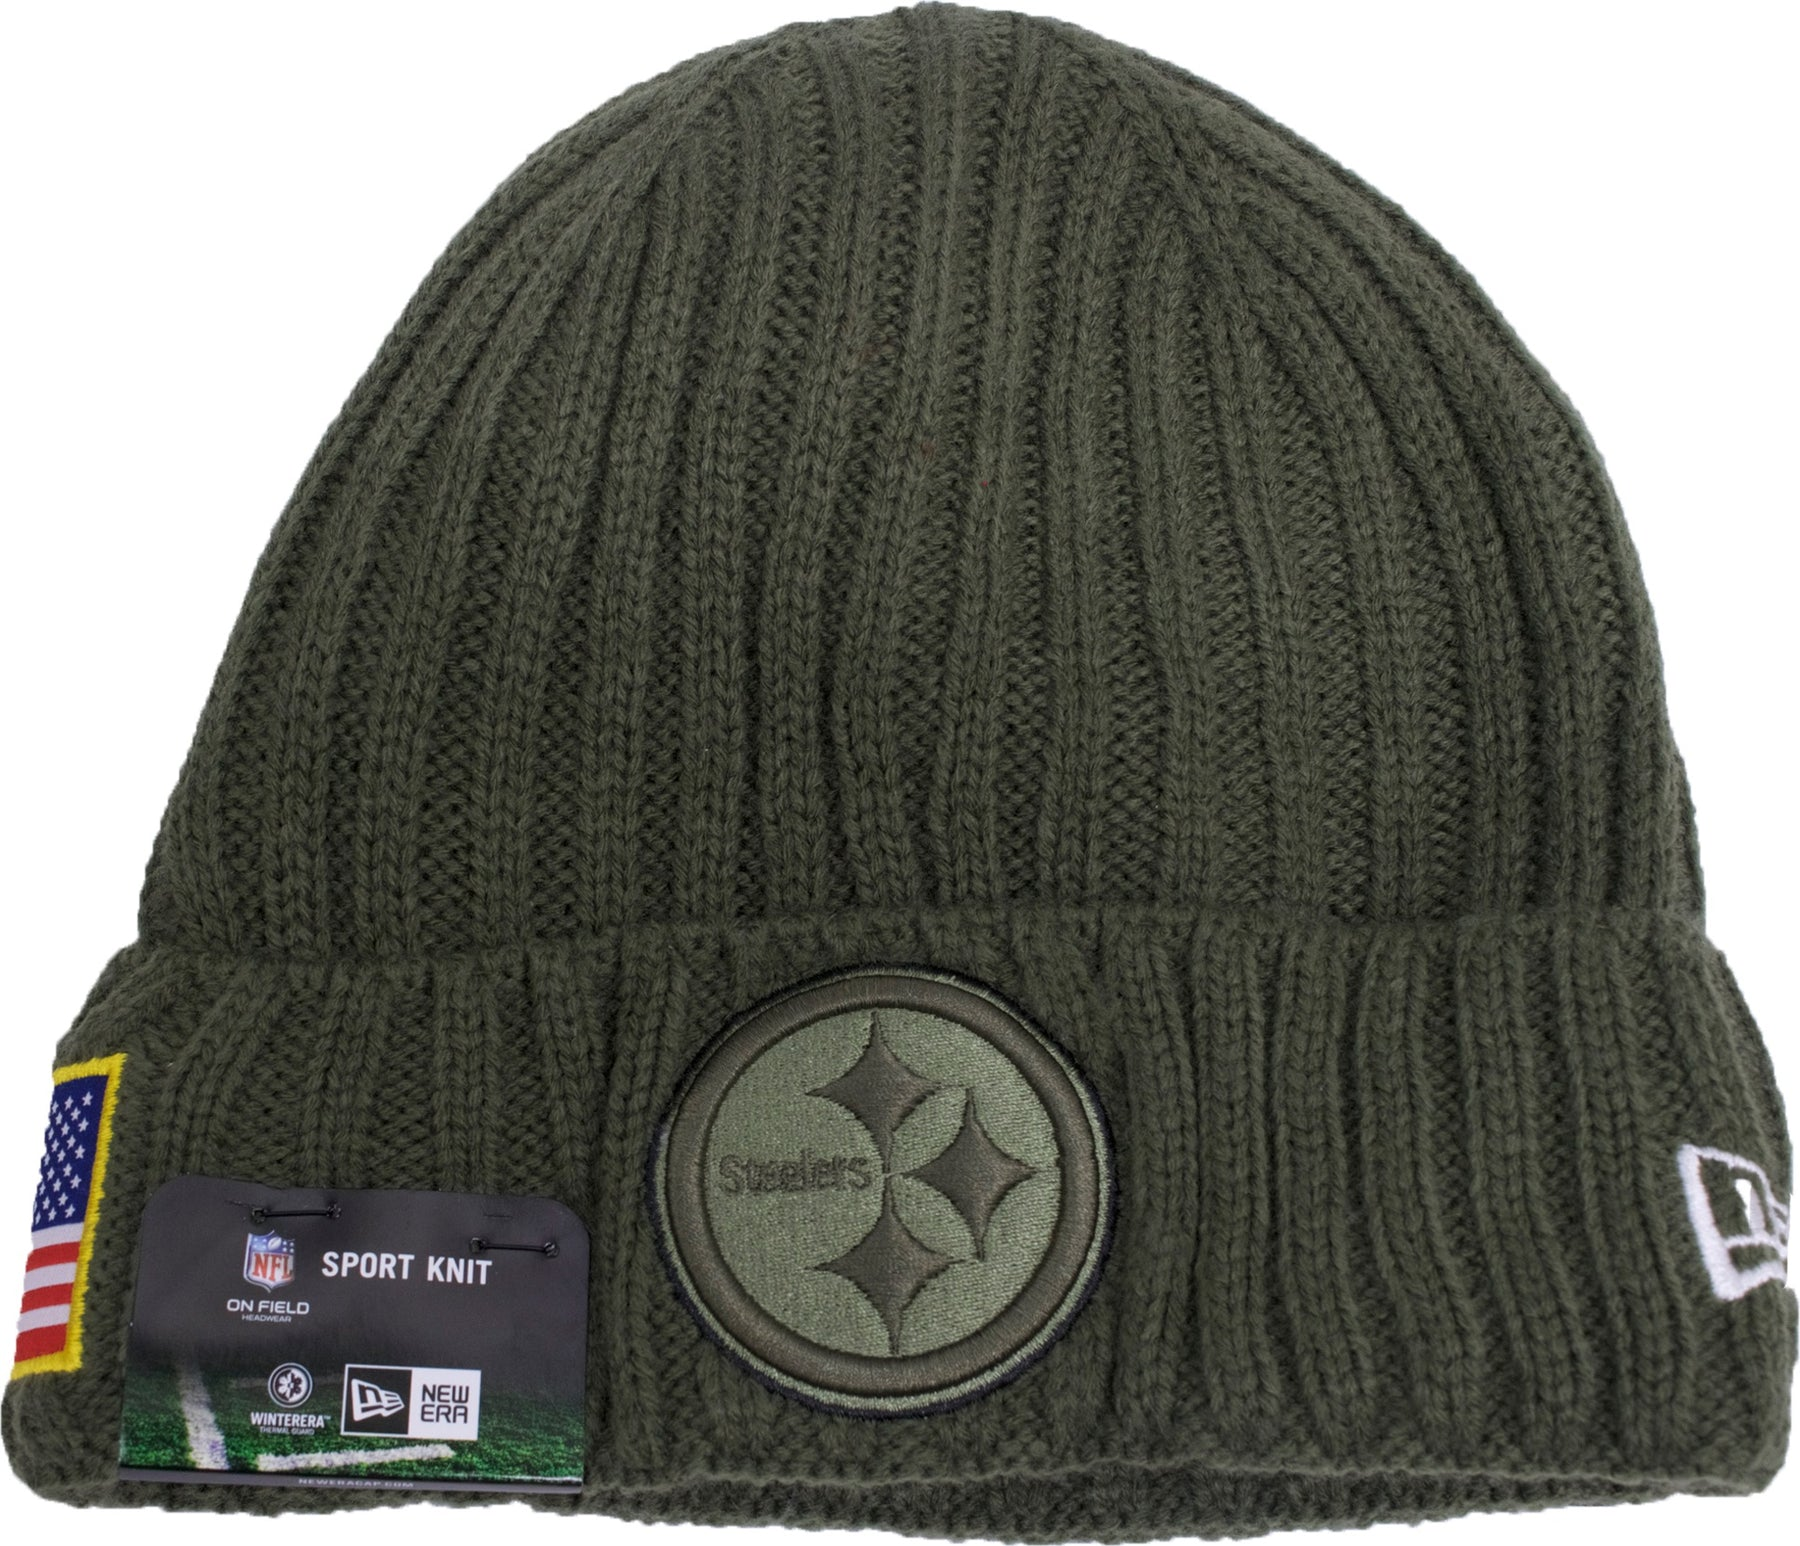 ... nfl one size knit beanie hat 5fa17 533af  coupon the pittsburgh  steelers 2017 salute to service beanie is military green has a raised cuff 4680db84b